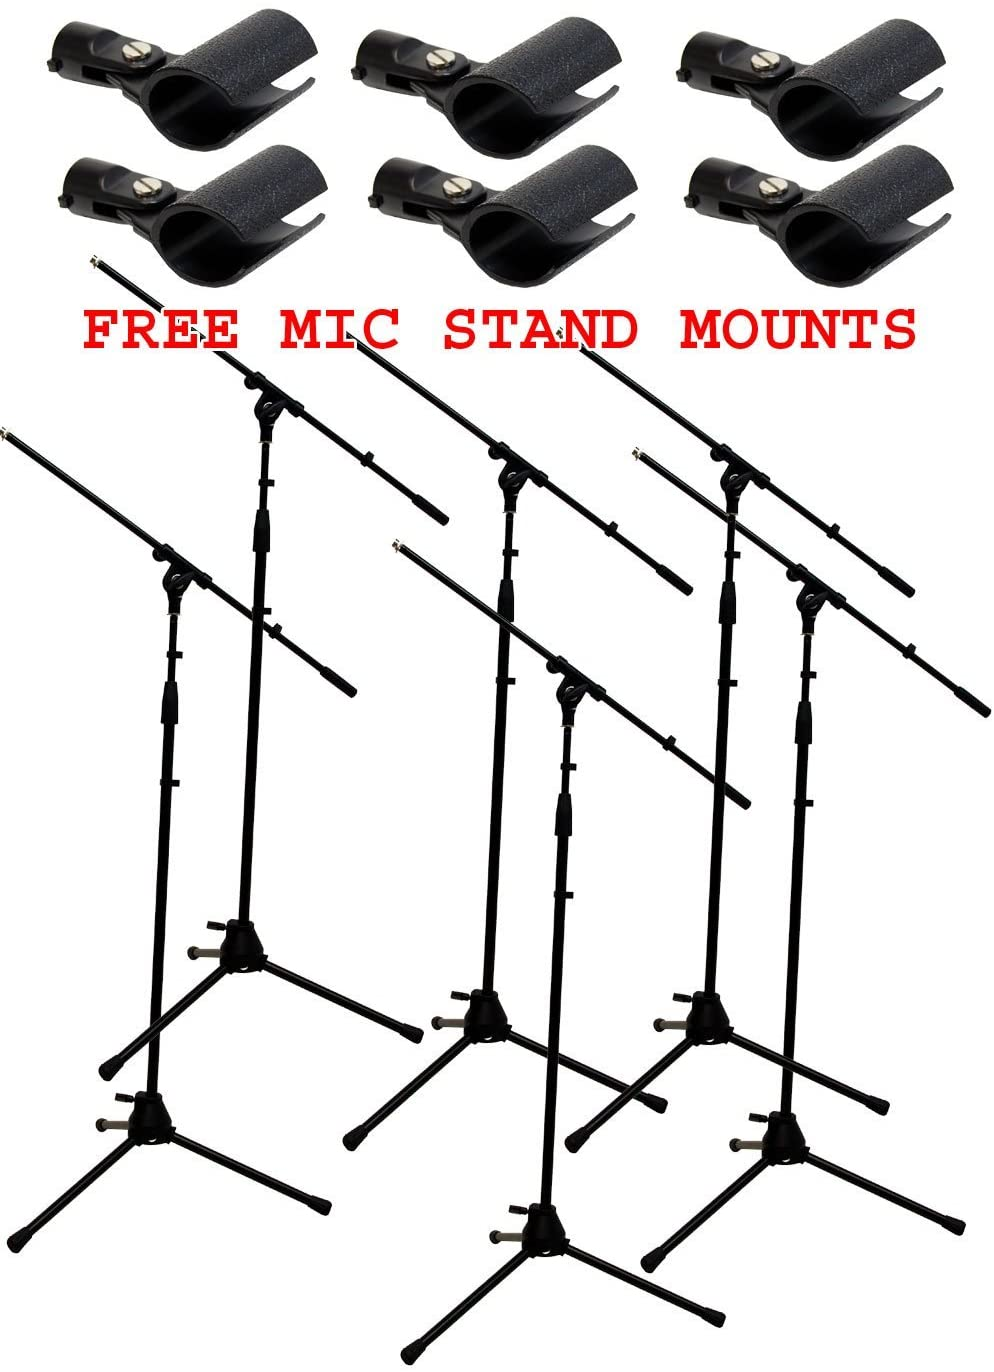 ASC (6) Pro Audio Mobile DJ Microphone Stands Adjustable Boom Stage or Instrument with (6) Free Mic Holder Clips